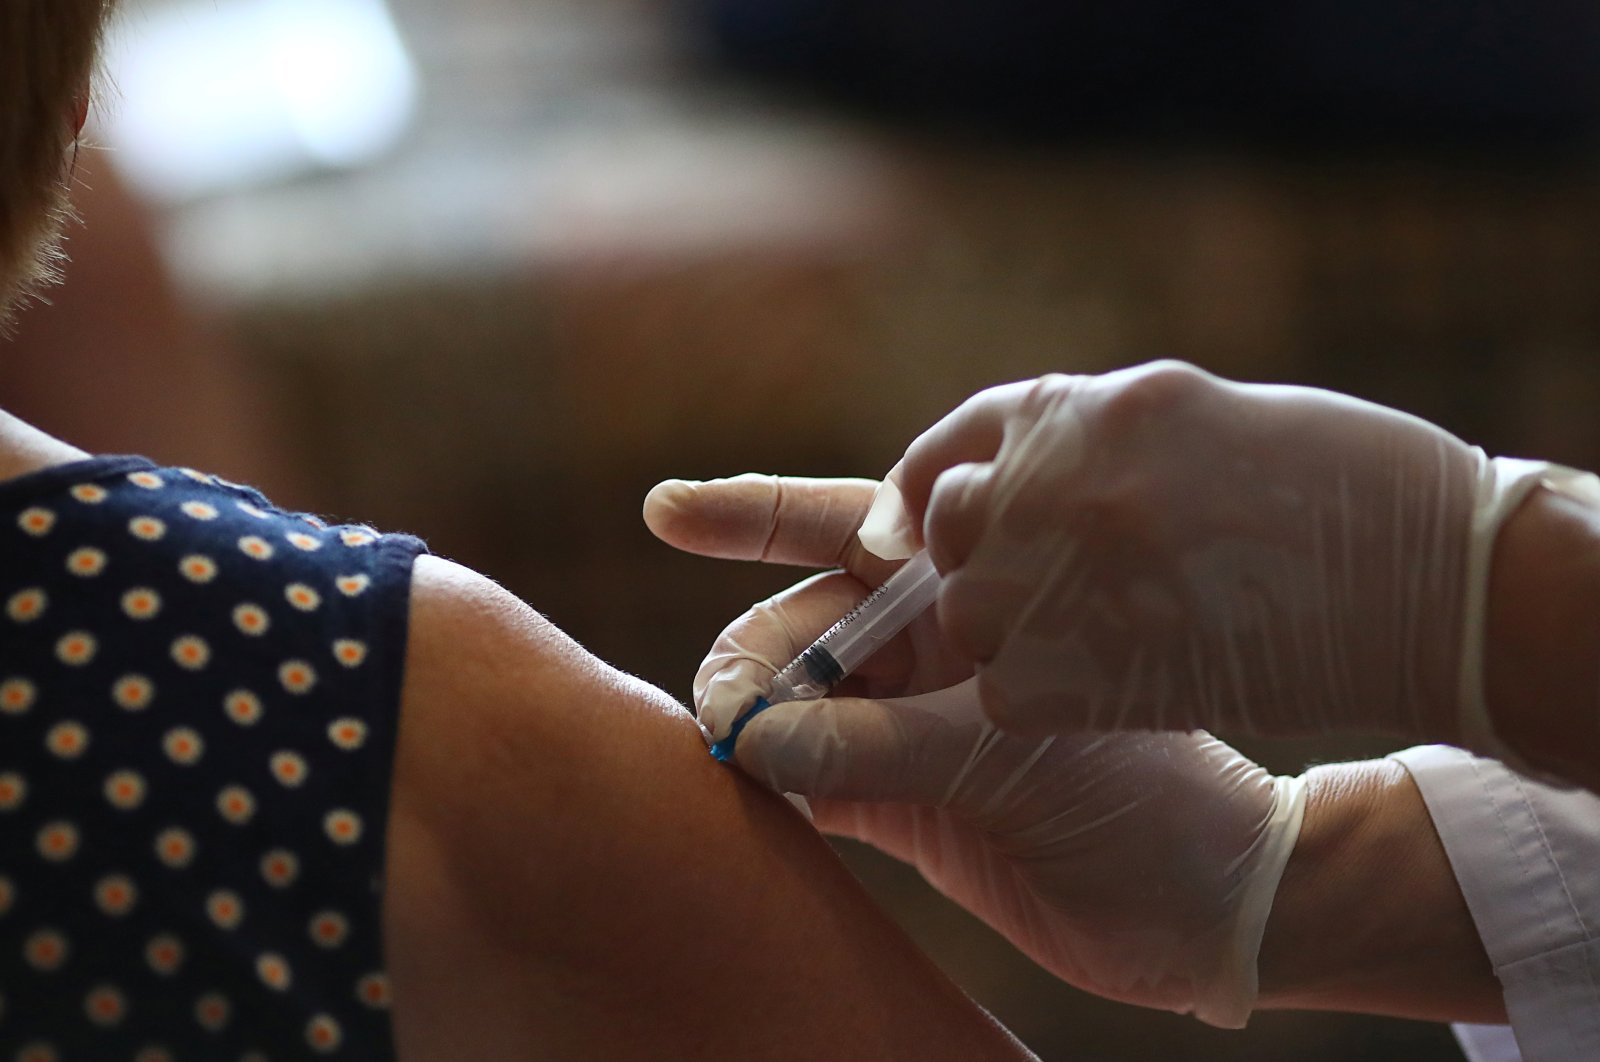 Local resident Nadezhda Dudkina receives a dose of a vaccine against the coronavirus at her home in the village of Loznoye in Volgograd region, Russia June 27, 2021. (Reuters Photo)